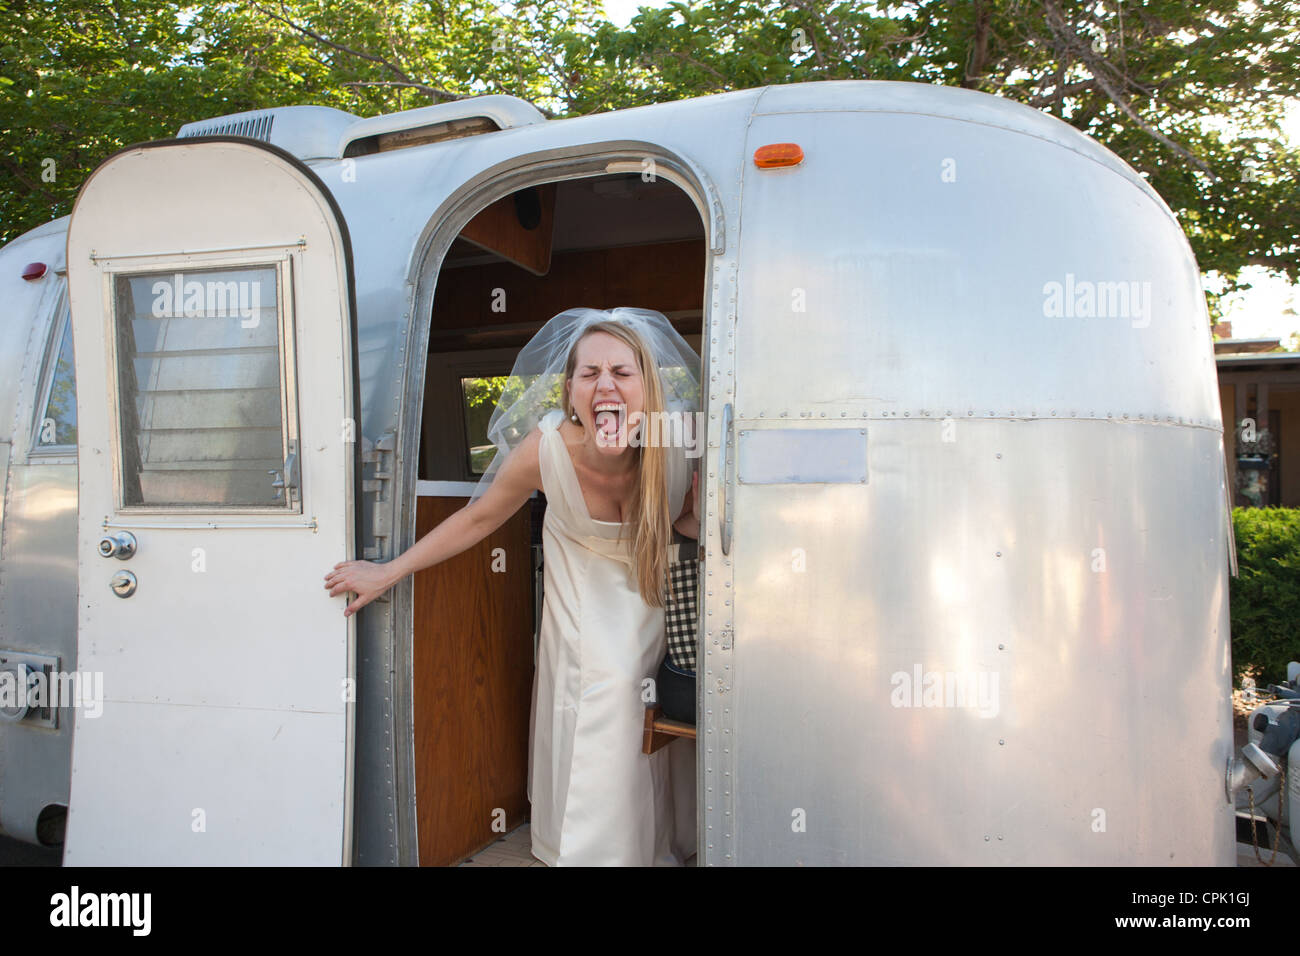 Bride screaming with excitement inside an Airstream trailer. Stock Foto